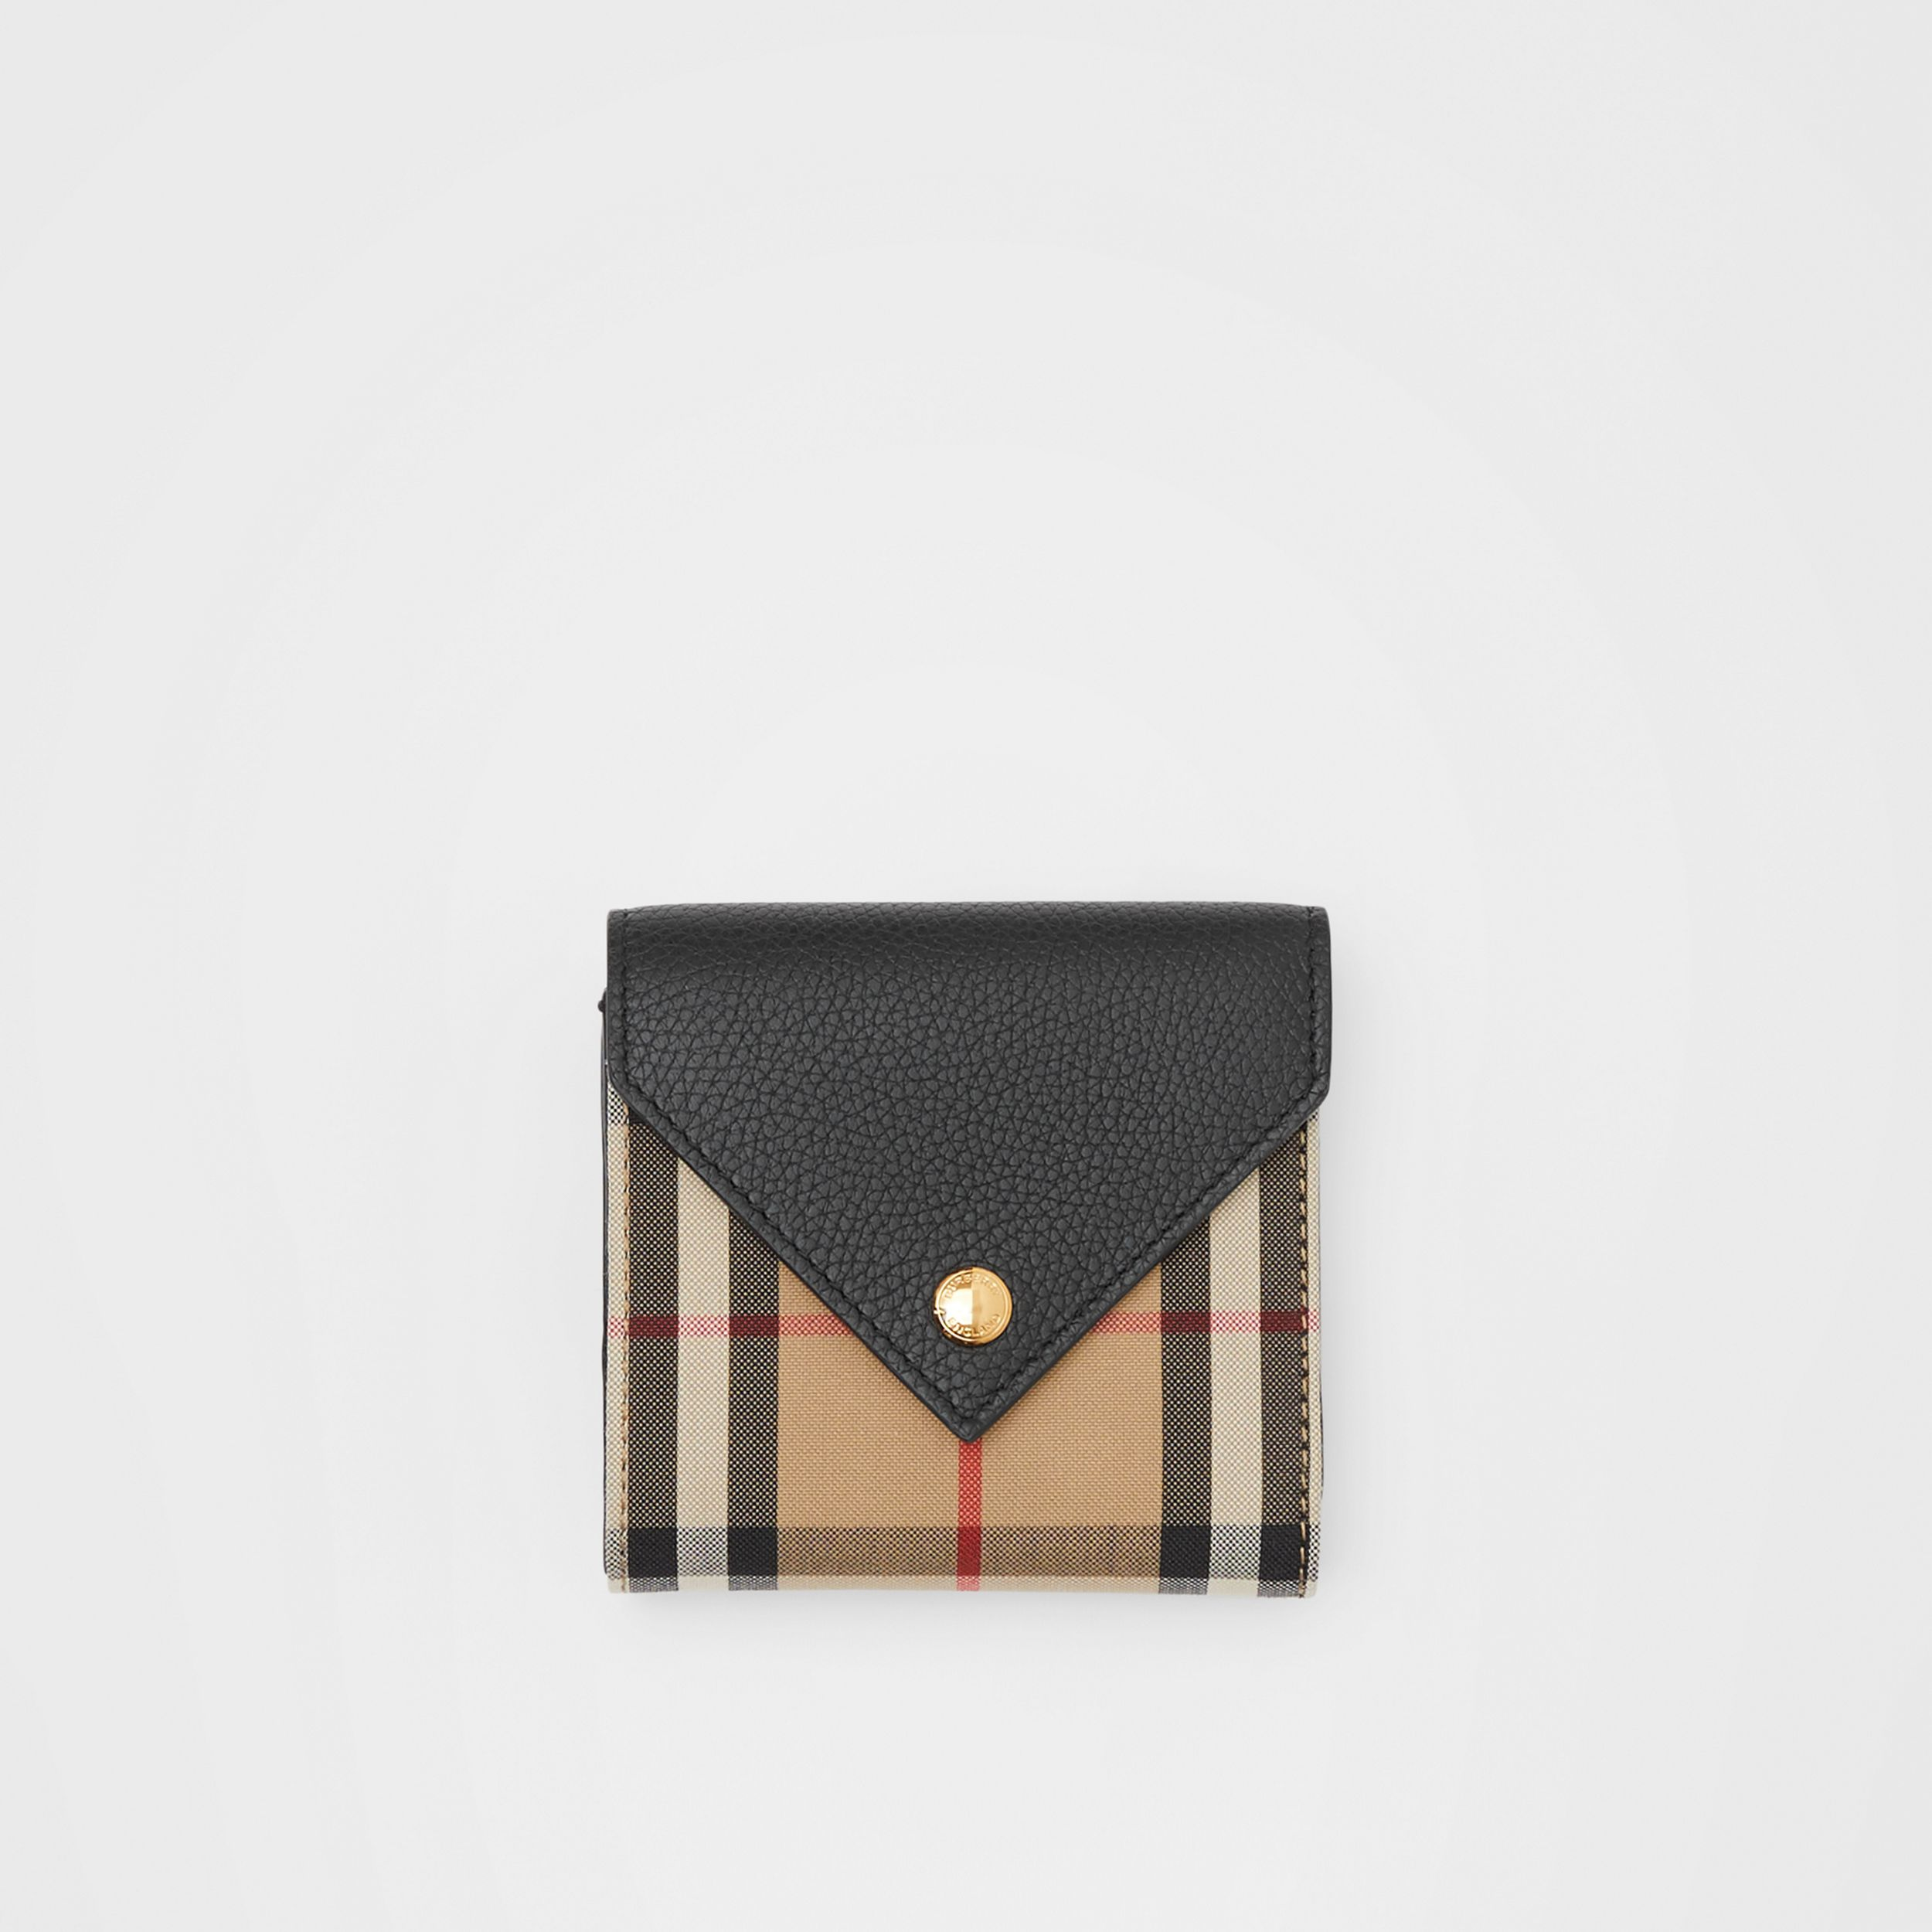 Vintage Check and Grainy Leather Folding Wallet in Black - Women | Burberry Canada - 1